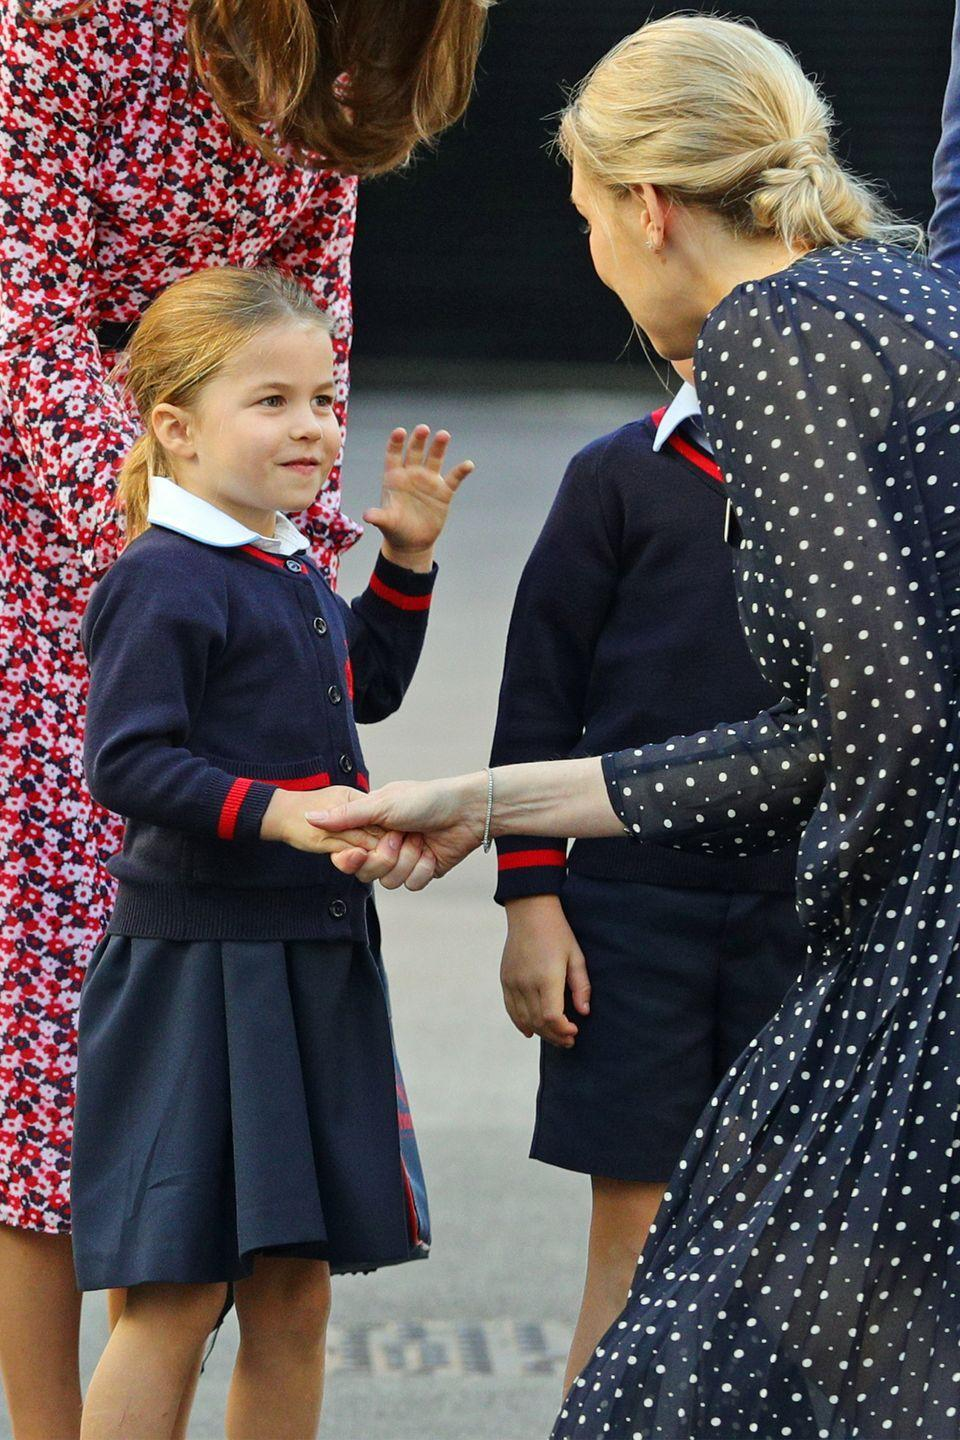 <p>Princess Charlotte shakes hands with a staff member from Thomas's Battersea.</p>